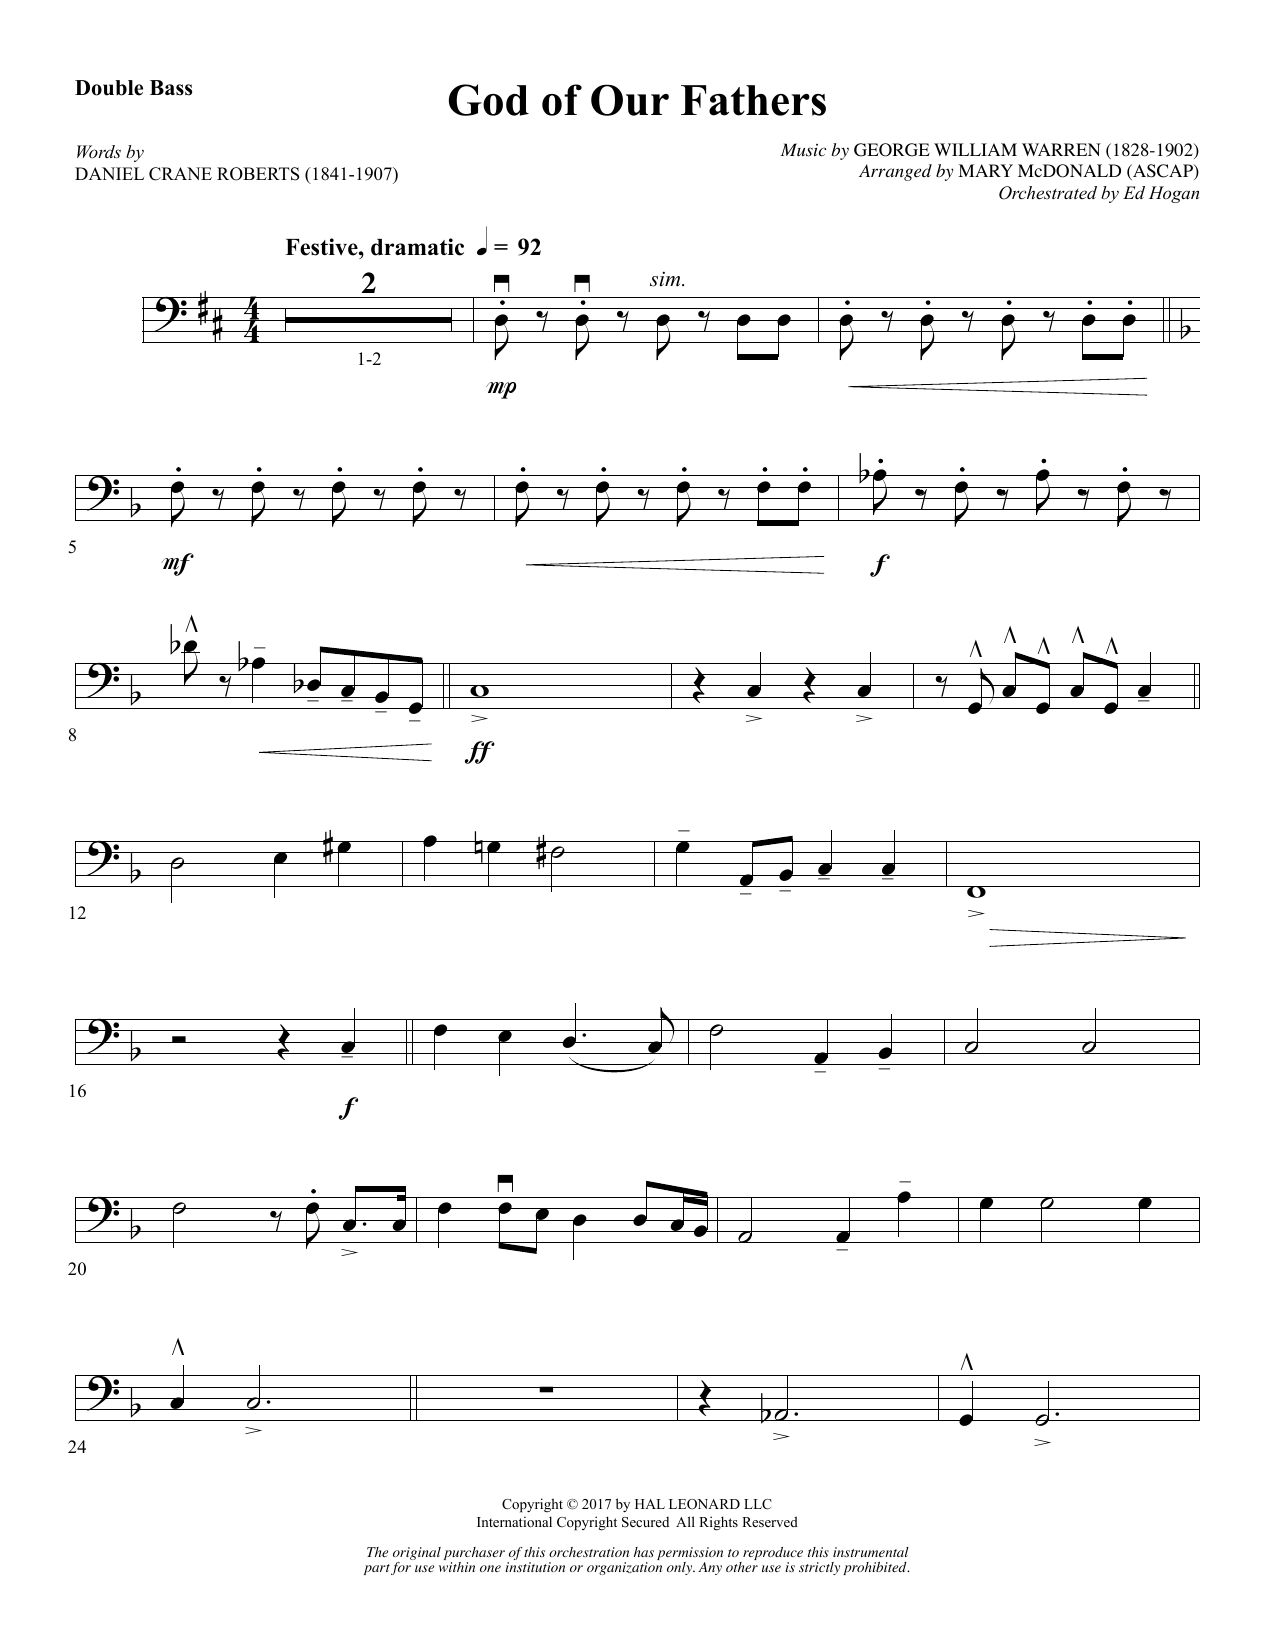 Mary McDonald God of Our Fathers - Double Bass sheet music notes and chords. Download Printable PDF.